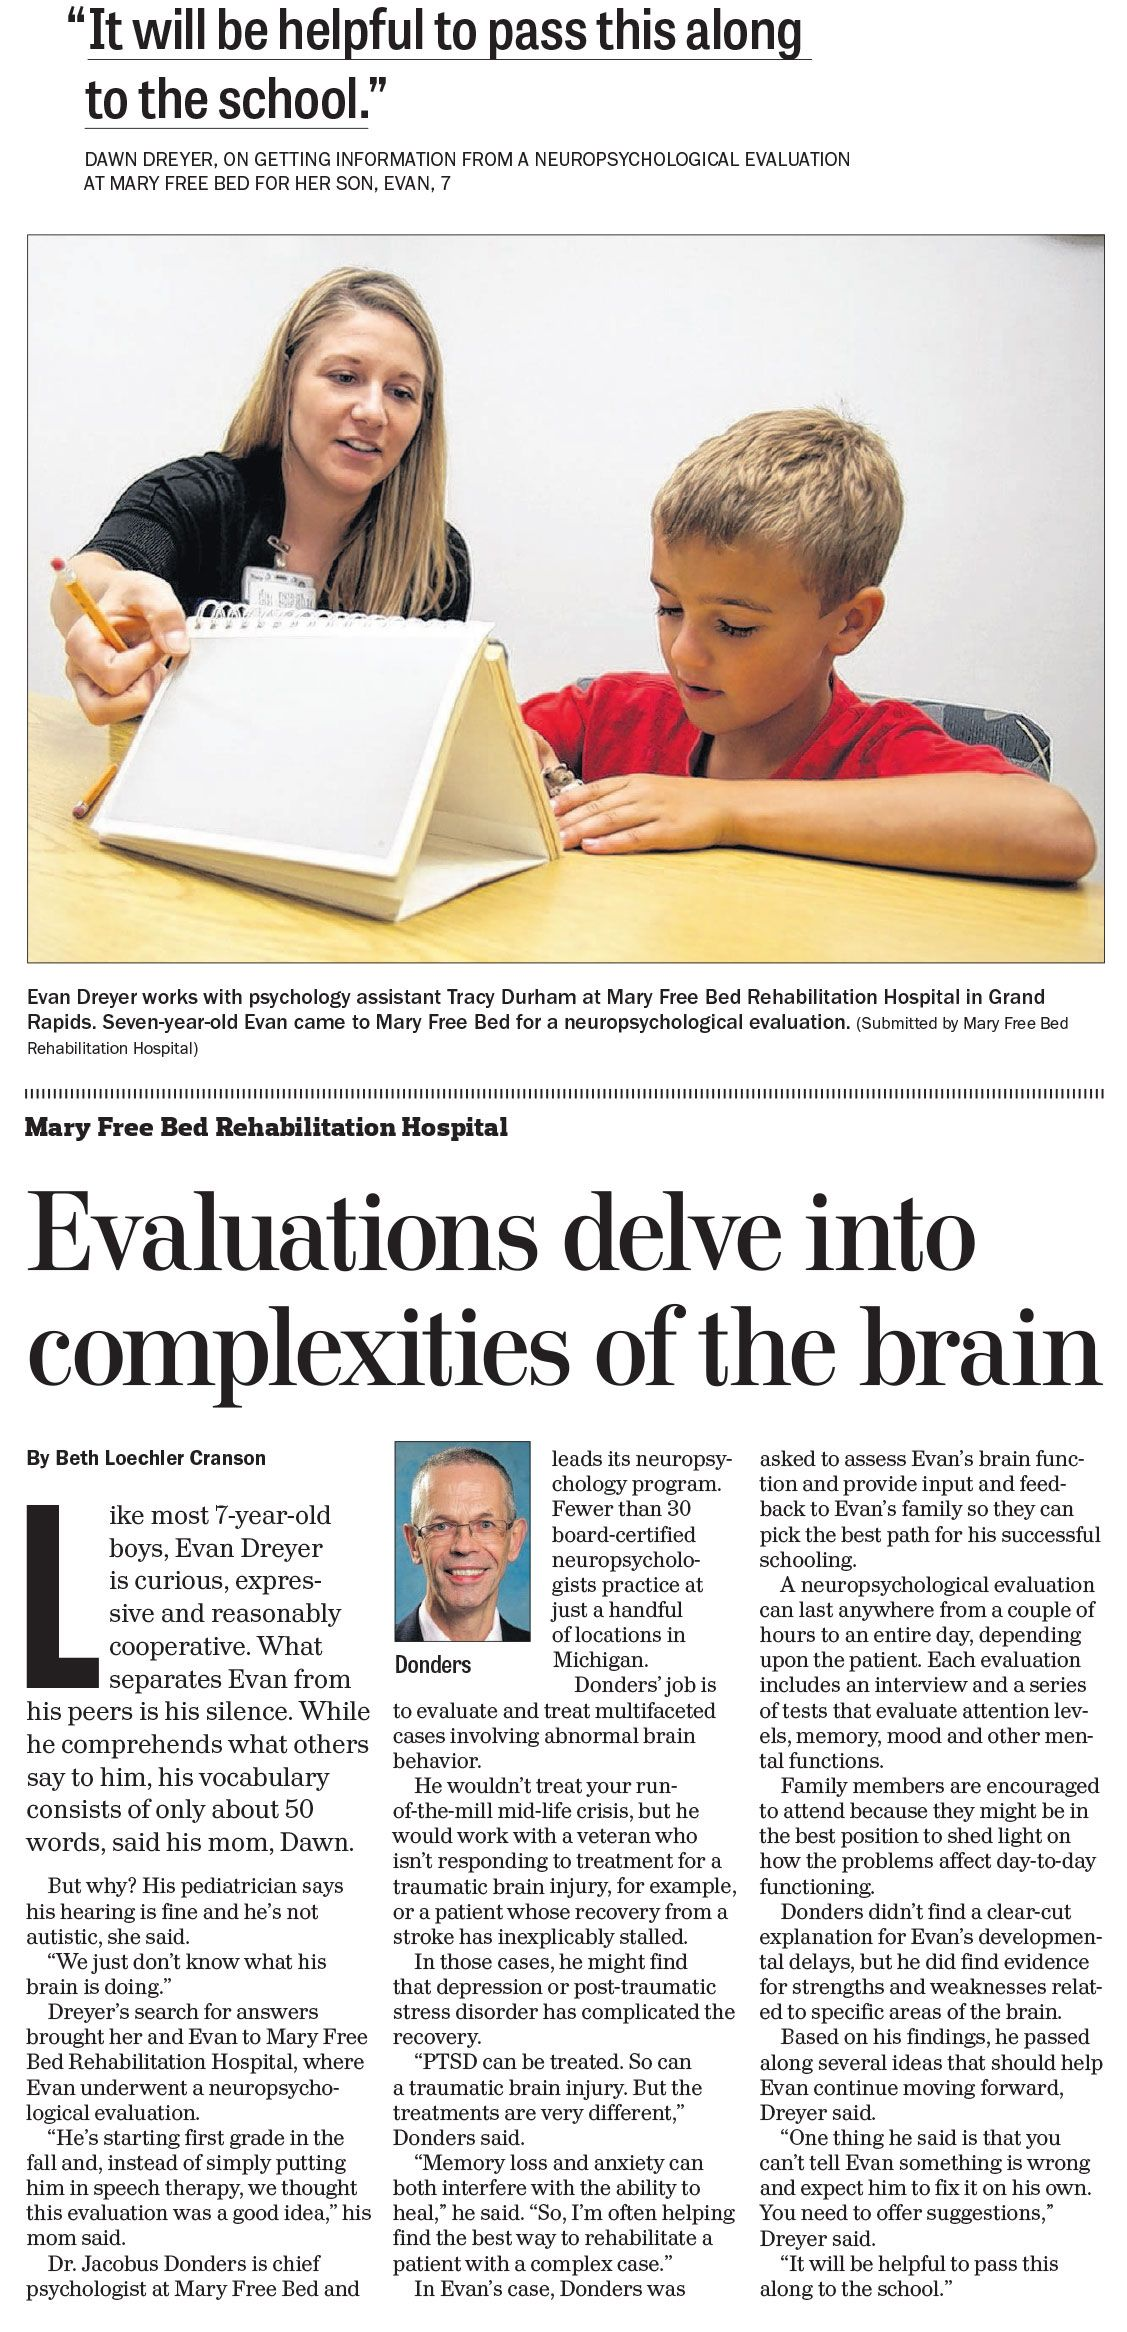 Neuropsychology can help people of all ages. Via @mlivedotcom @grpress